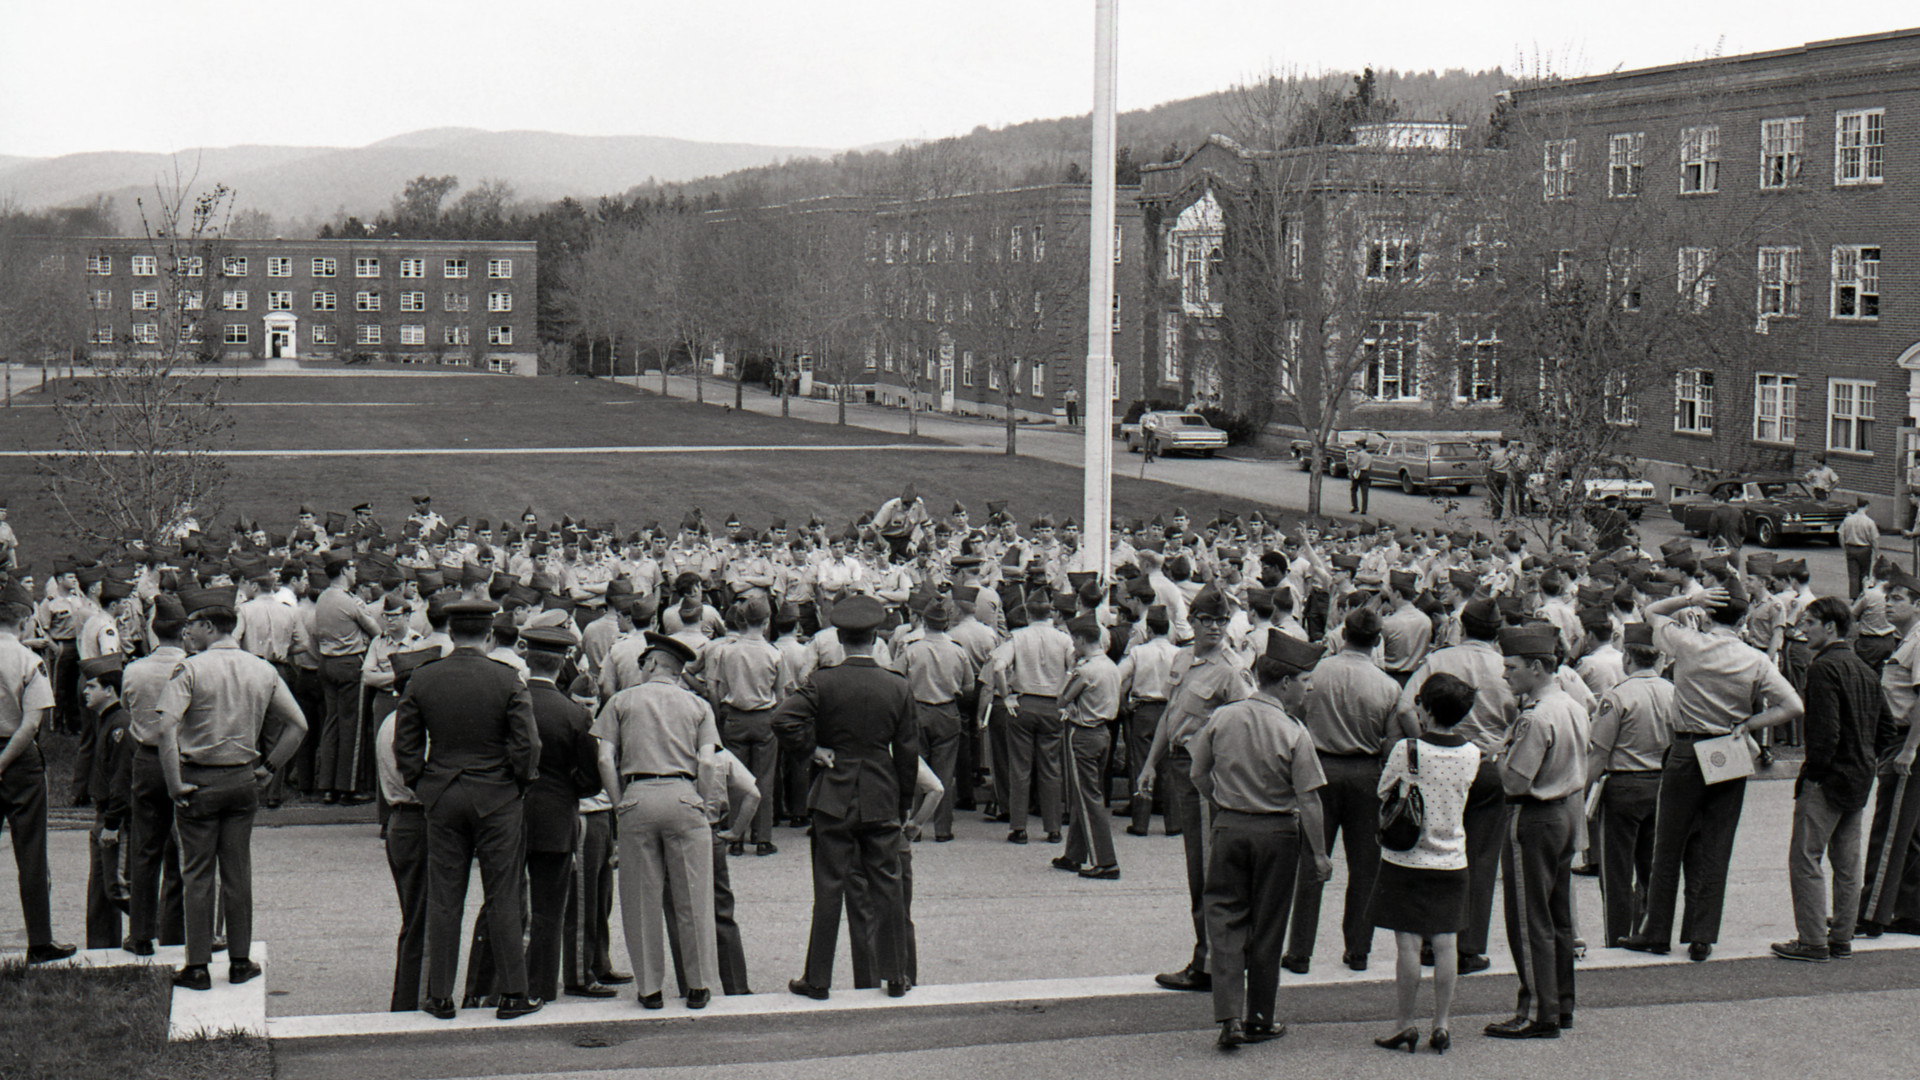 Class of 1970 - Upper Parade Ground - from Jackman Hall